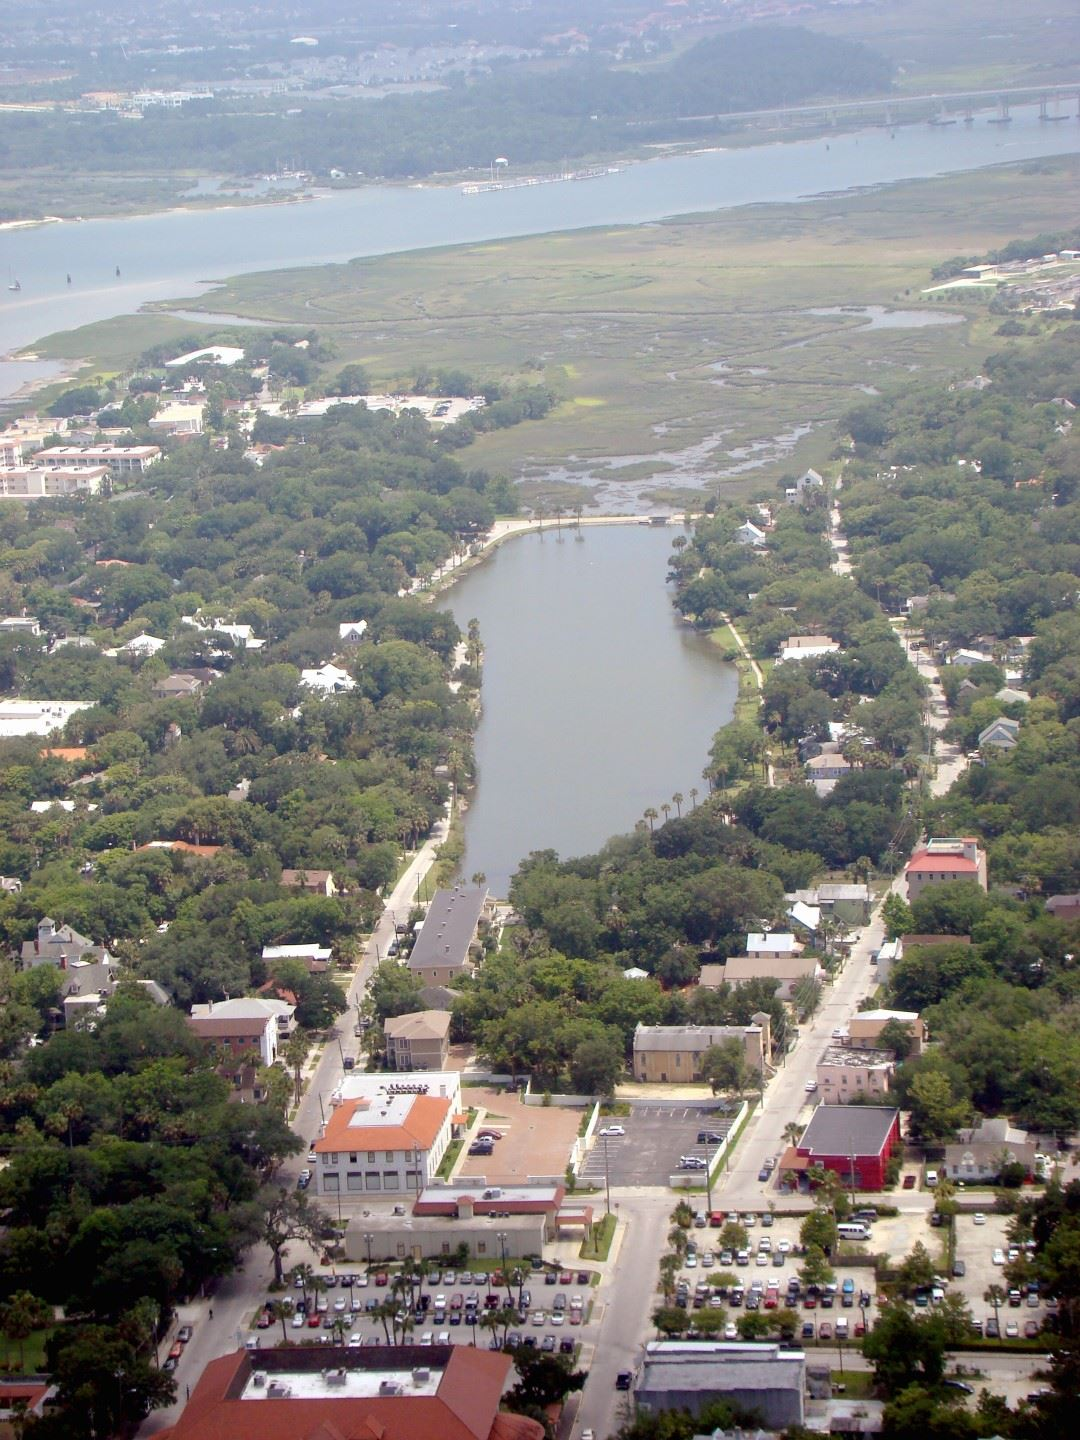 Aerial view of Lake Maria Sanchez looking south